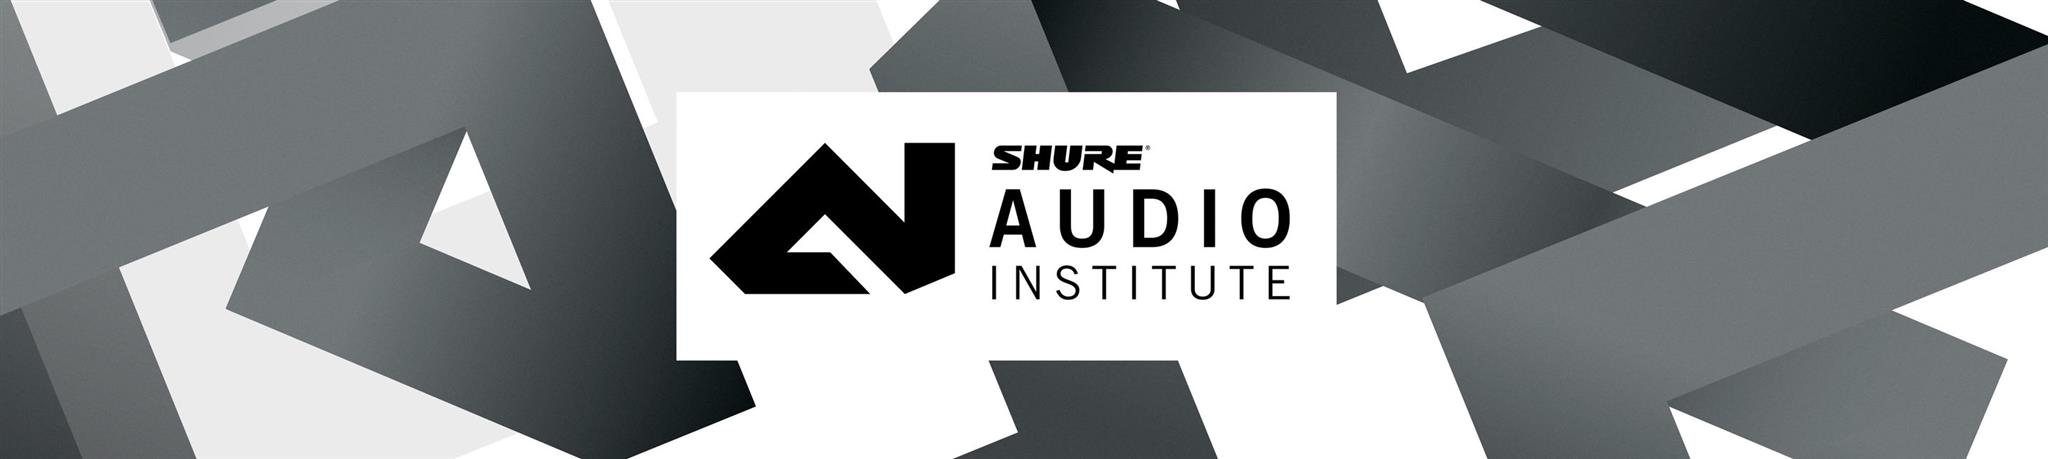 shure_audio_institute_art_center-header-shure_eu_20161